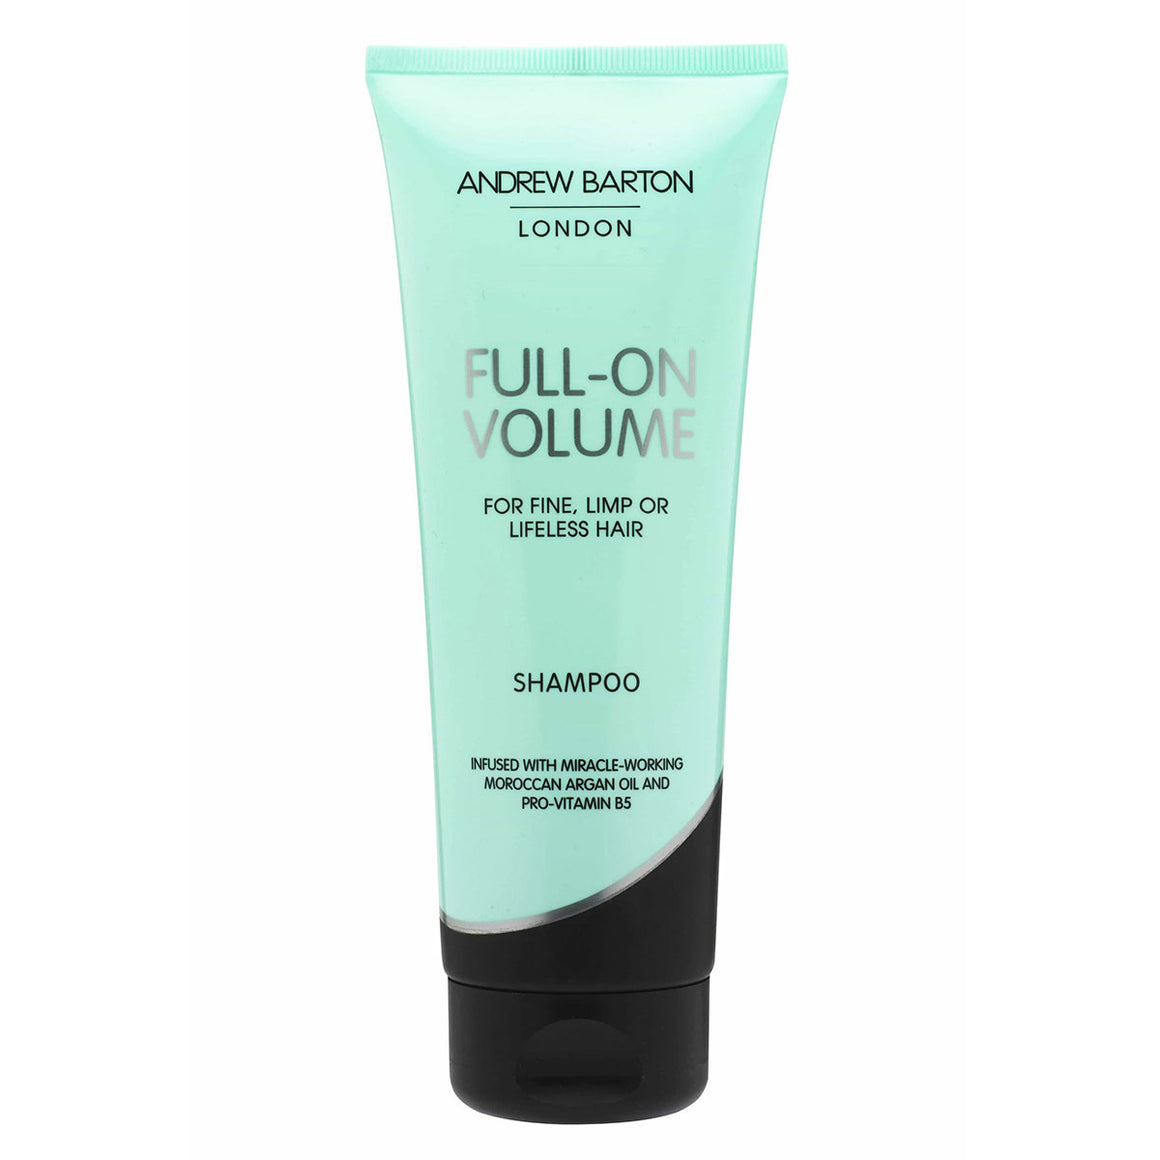 Andrew Barton Full On Volume Shampoo-250ml at BD Budget Beauty (BBB)